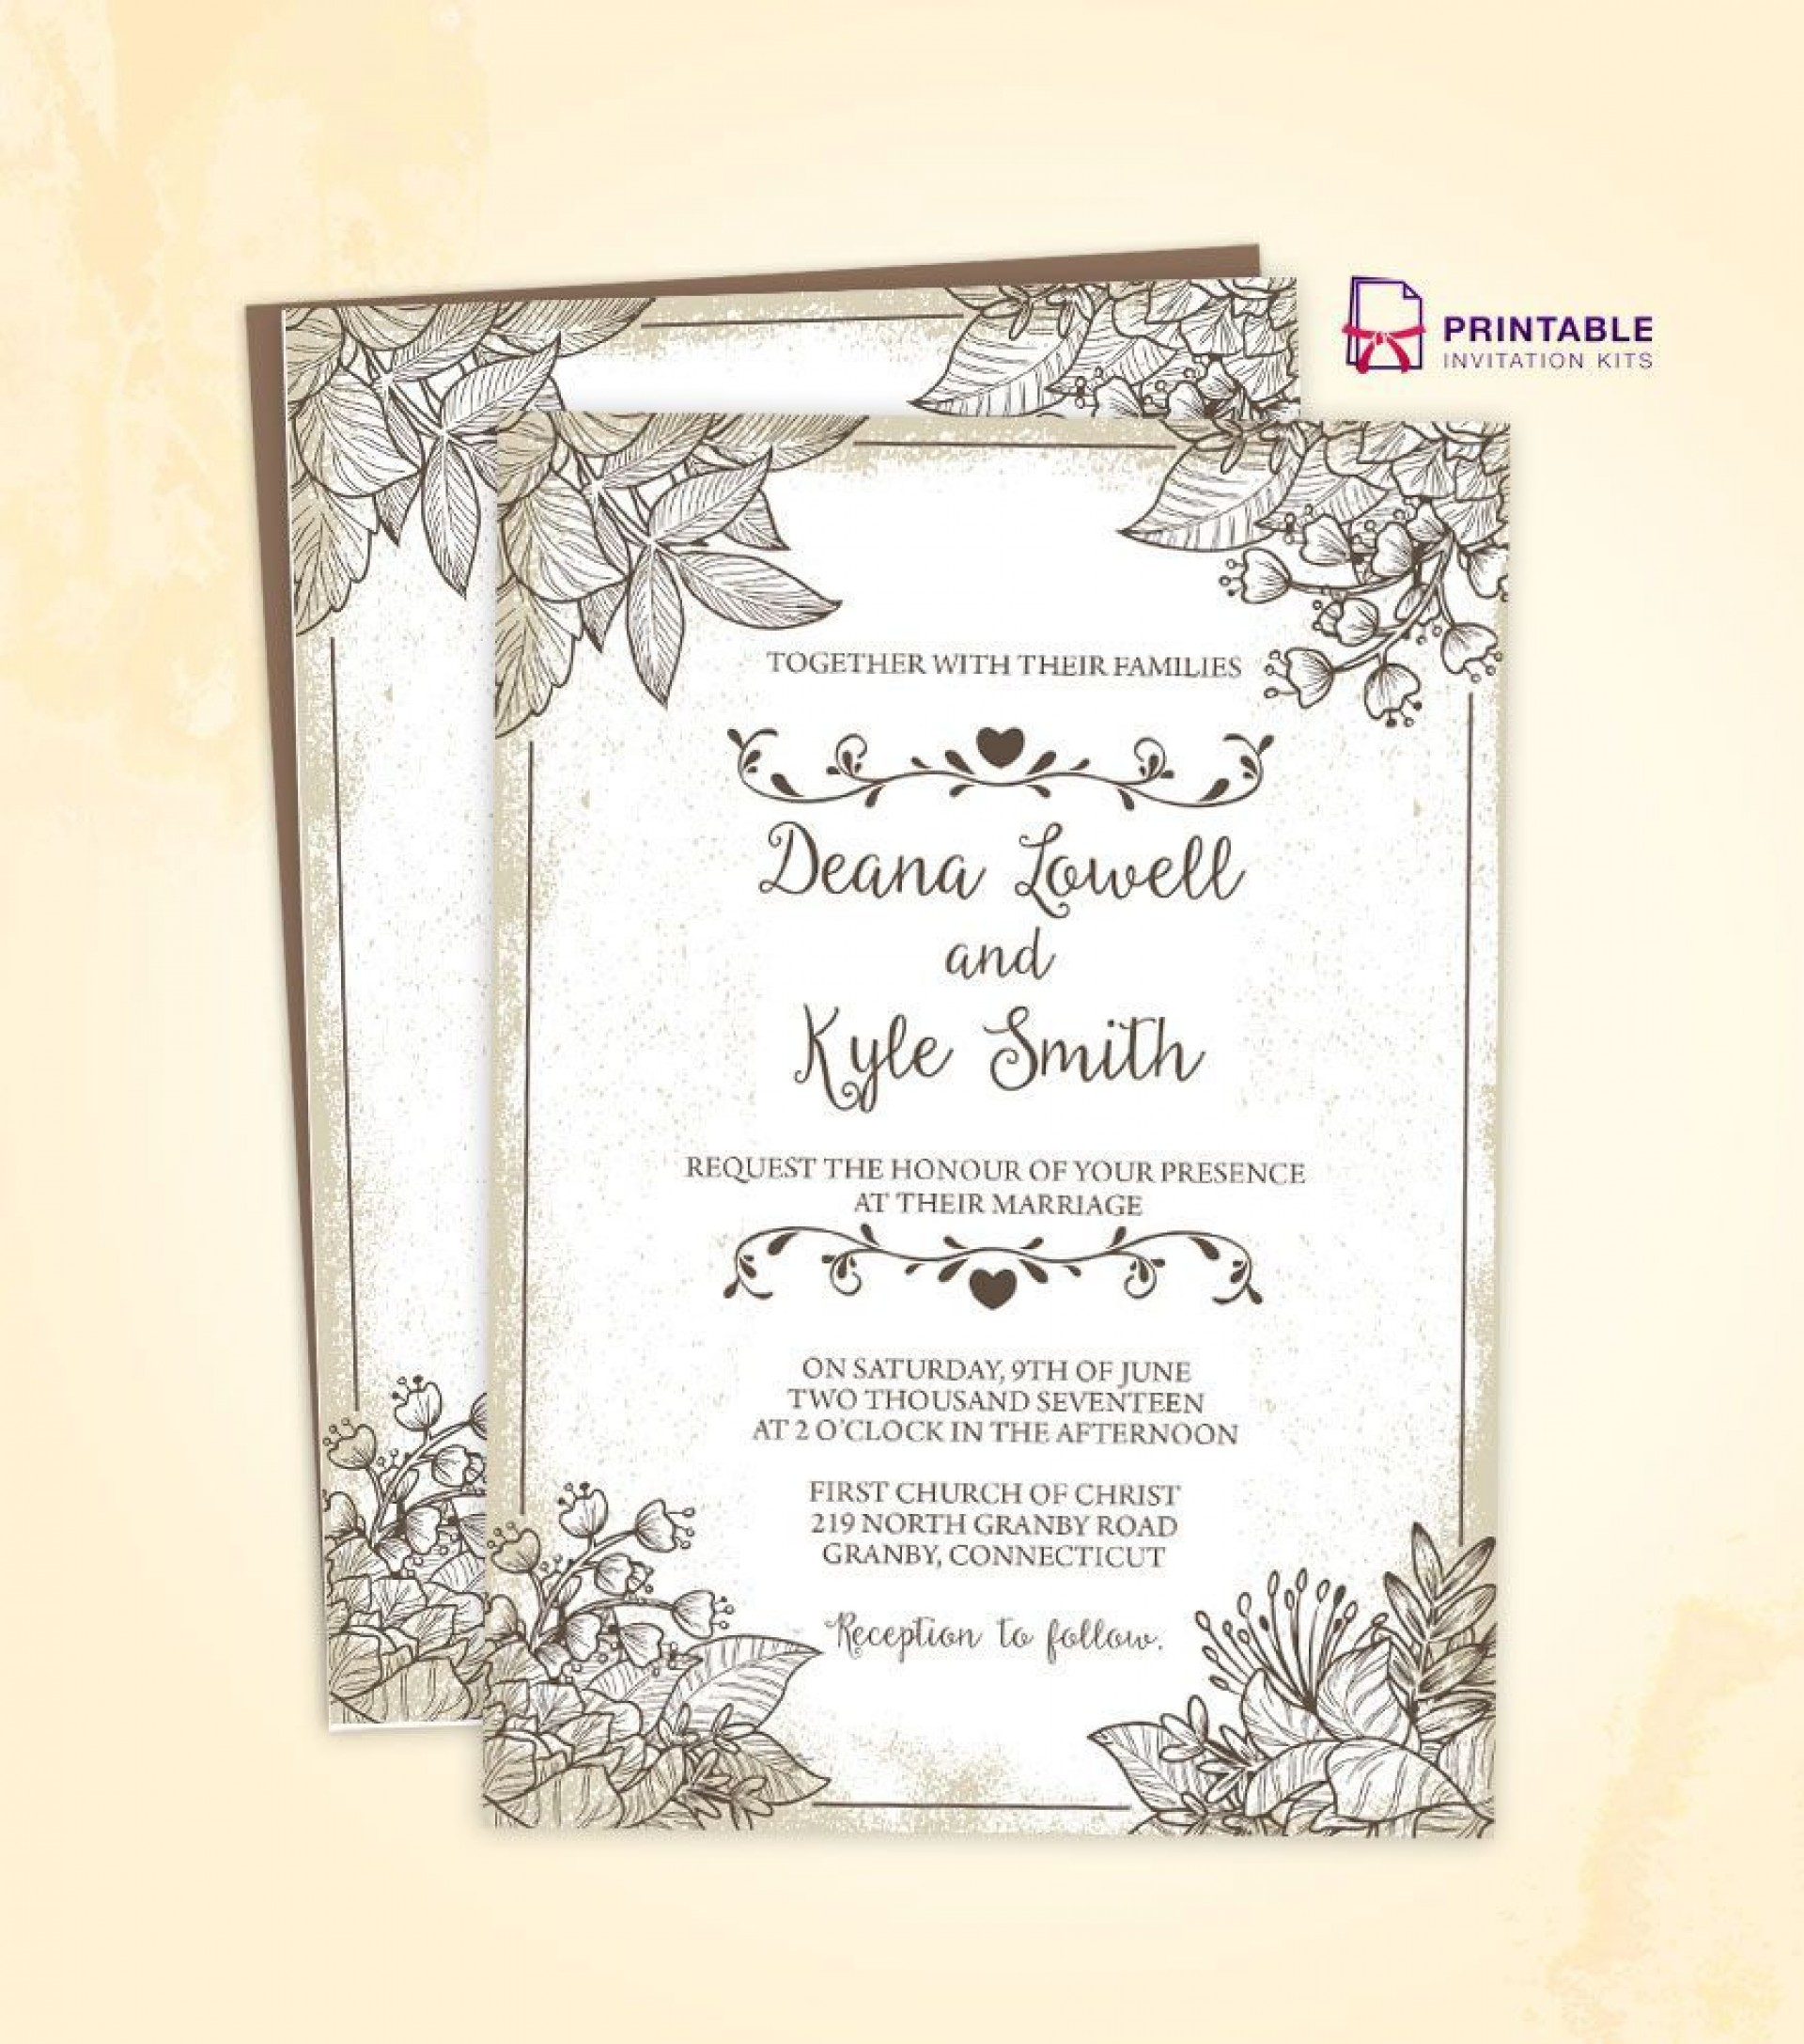 002 Staggering Free Download Wedding Invitation Template For Word Photo  Indian Microsoft1920